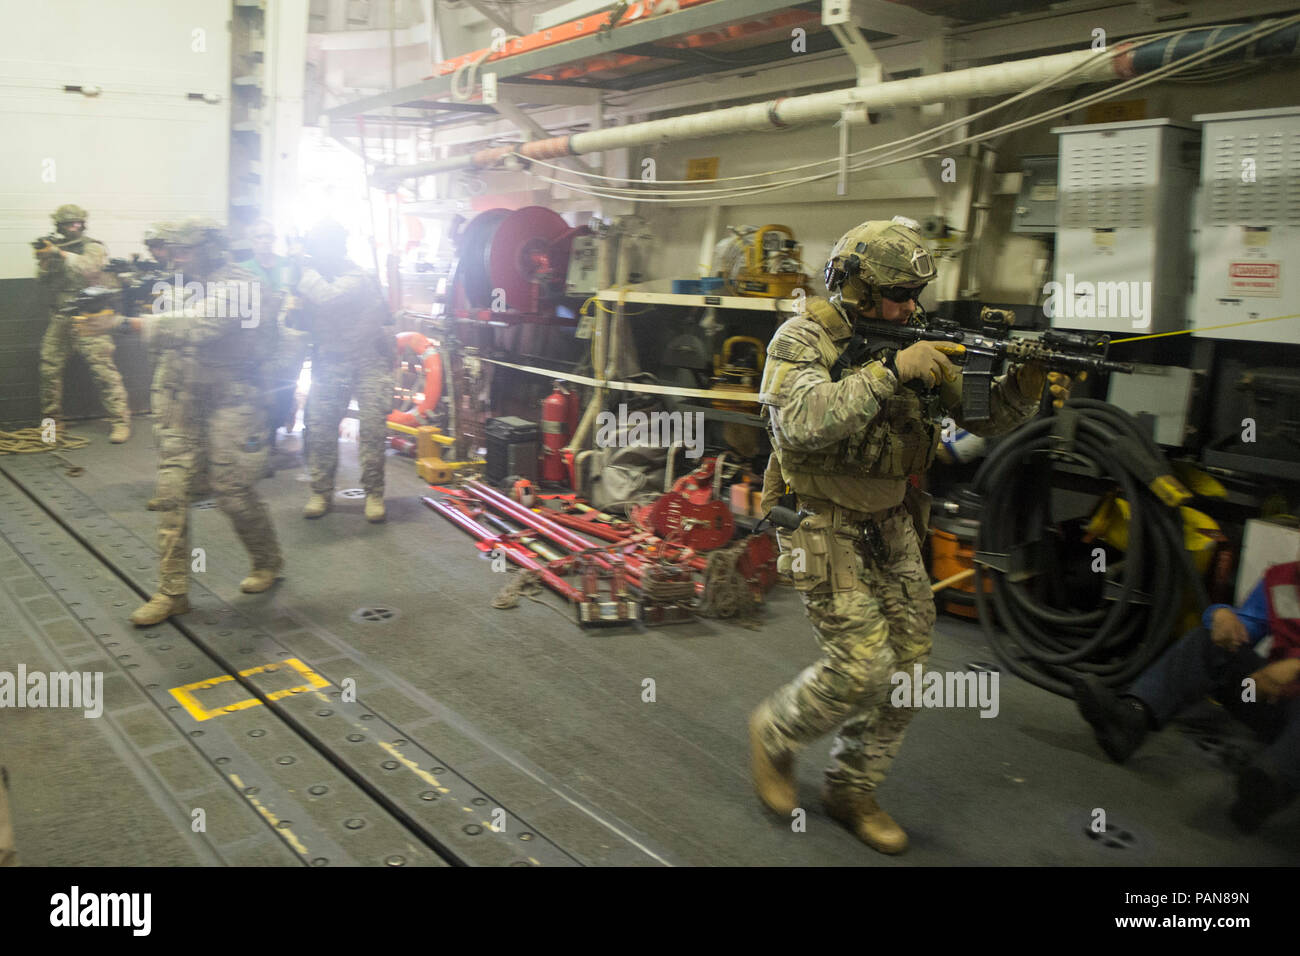 180719-G-ZV557-1295 PACIFIC OCEAN (July 19, 2018) Members of the U.S. Coast Guard Tactical Delivery Team (TDT) secure the hanger deck of the guided-missile destroyer USS William P. Lawrence (DDG 110) during training operations as part of the Rim of the Pacific (RIMPAC) exercise, July 19. The TDT is part of the U.S. Coast Guard Maritime Security Response Team-West, which is the service's only offensively oriented counter-terrorist team and play a critical role in the Department of Homeland Security's maritime defense strategy. Twenty-five nations, 46 ships and five submarines, about 200 aircraf - Stock Image